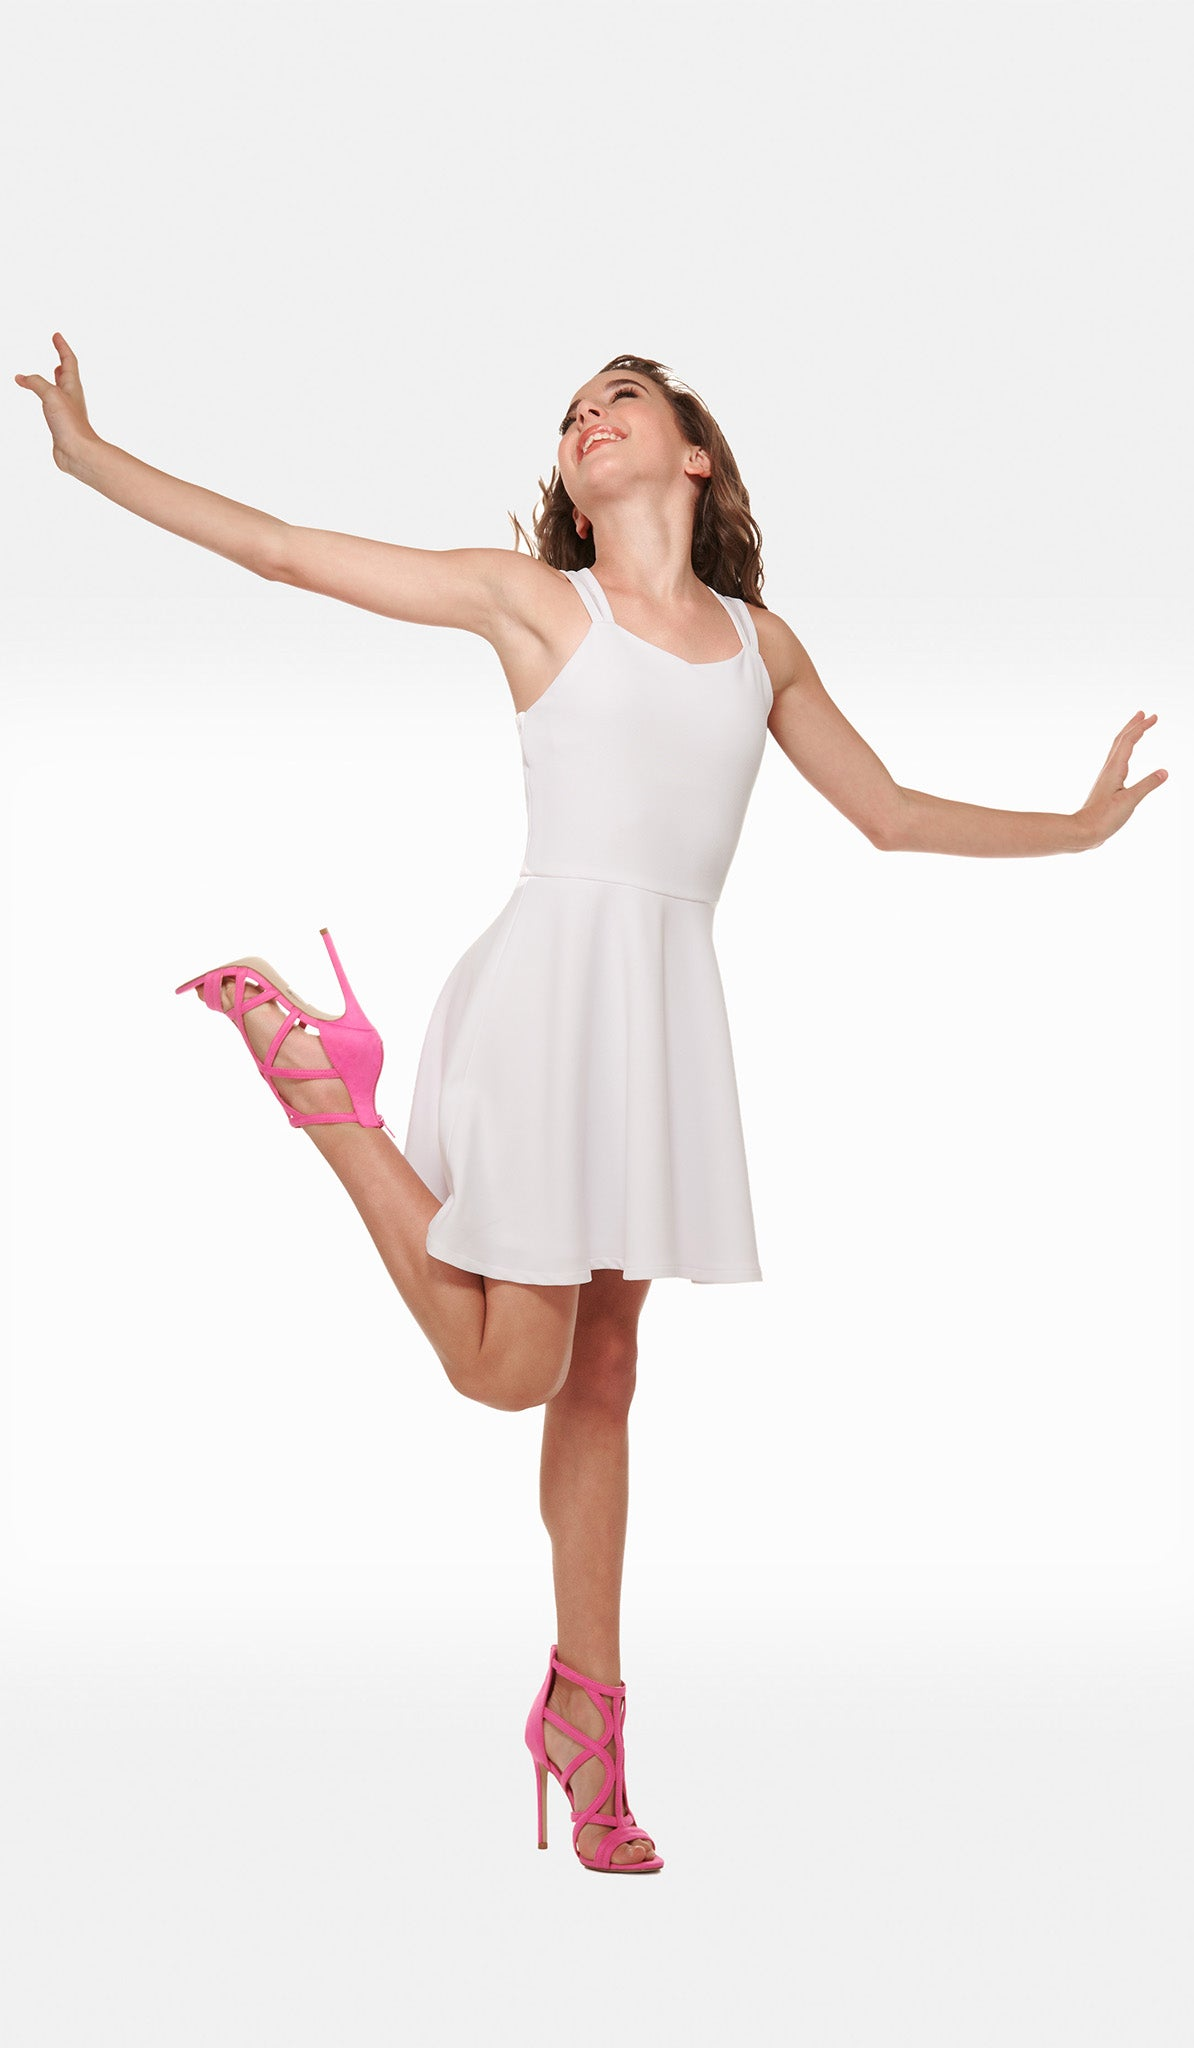 THE ASPEN DRESS - Sallymiller.com - [variant title] - | Event & Party Dresses for Tween Girls & Juniors | Weddings Dresses, Bat Mitzvah Dresses, Sweet Sixteen Dresses, Graduation Dresses, Birthday Party Dresses, Bar Mitzvah Dresses, Cotillion Dresses